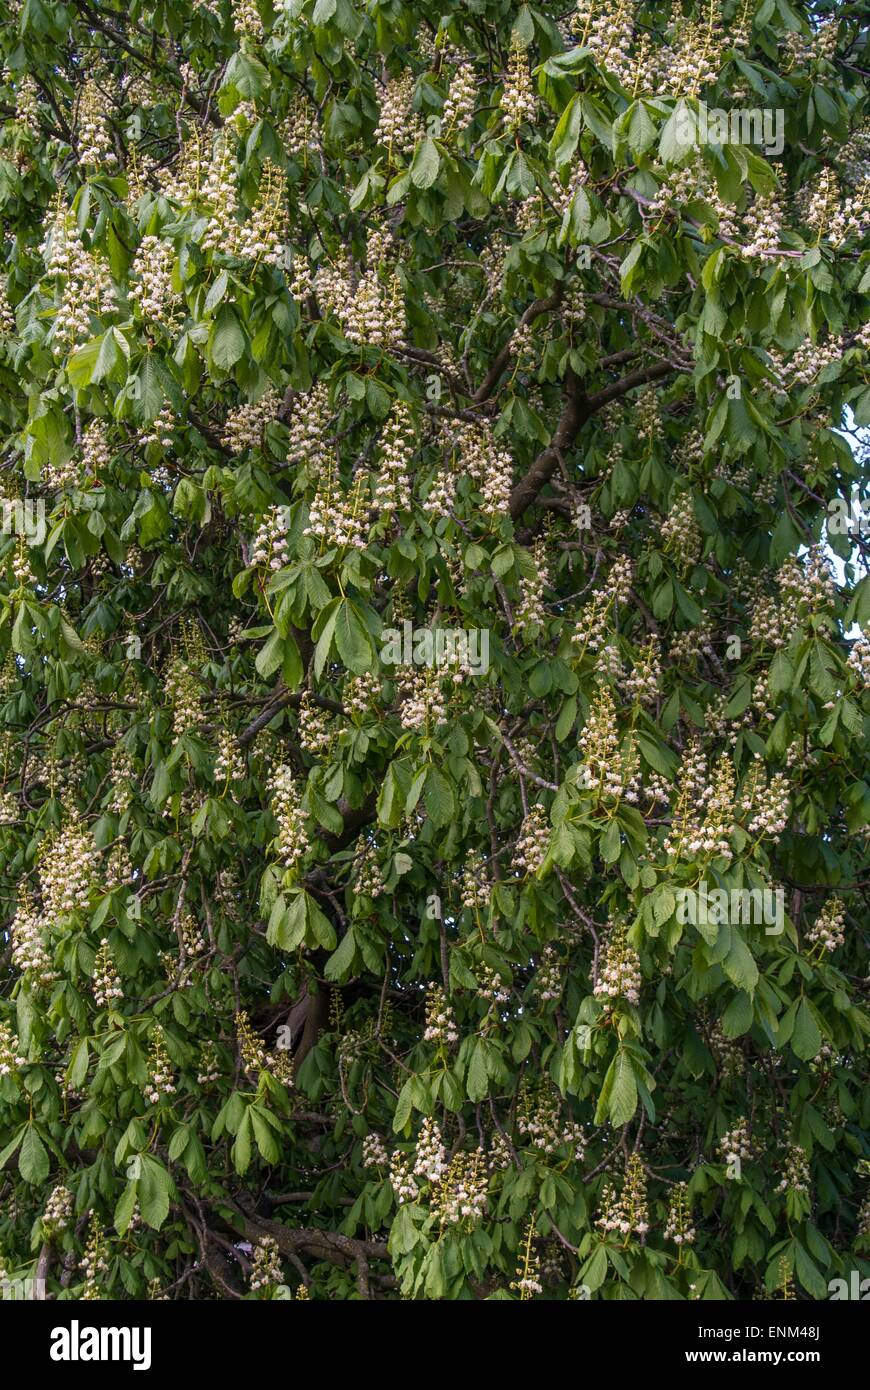 Horse chestnut tree - Aesculus hippocastanum.Showing flower spikes - Stock Image